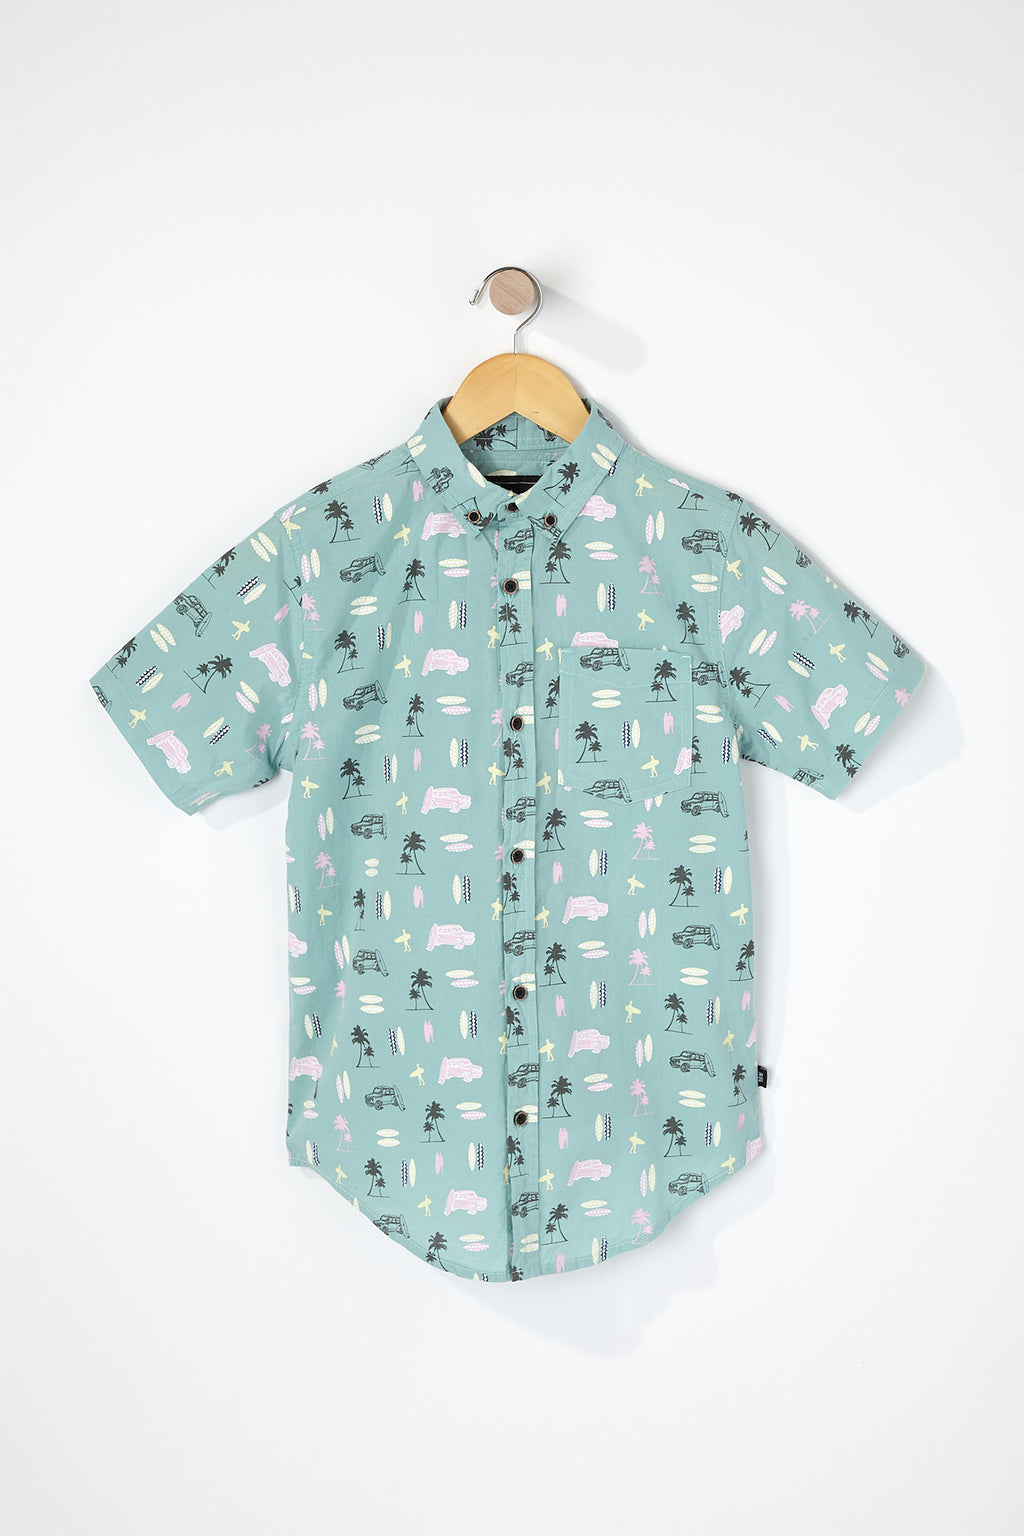 West49 Boys Surf Button Up Shirt